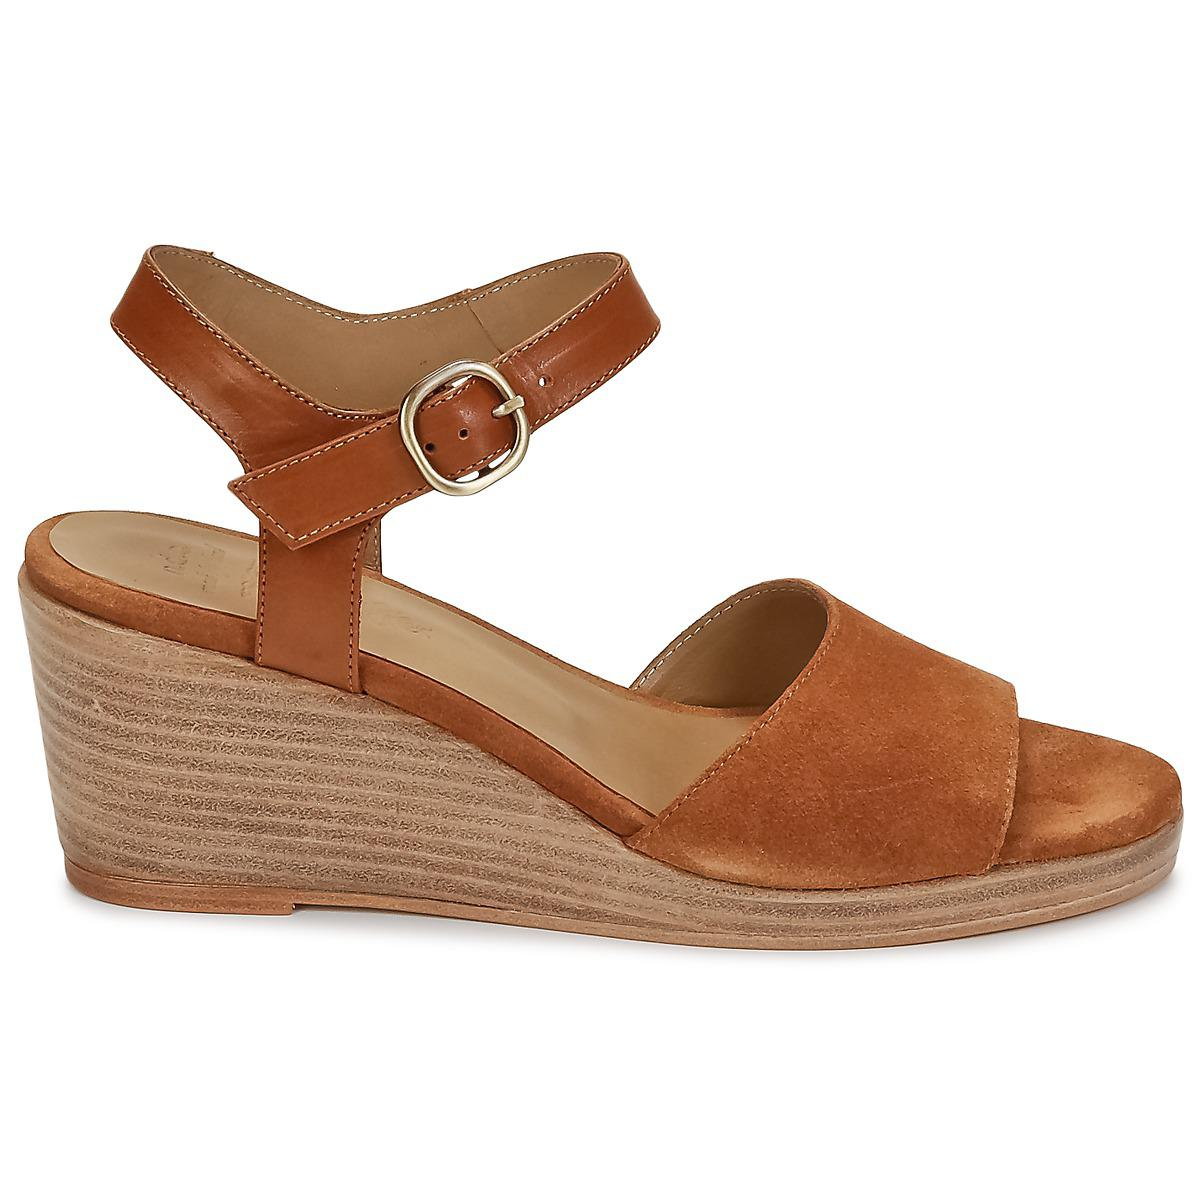 Many Styles Discount n.d.c. LAS SALINAS women's Sandals in Outlet Fashionable Natural And Freely Outlet Nicekicks 6et0ZyZ